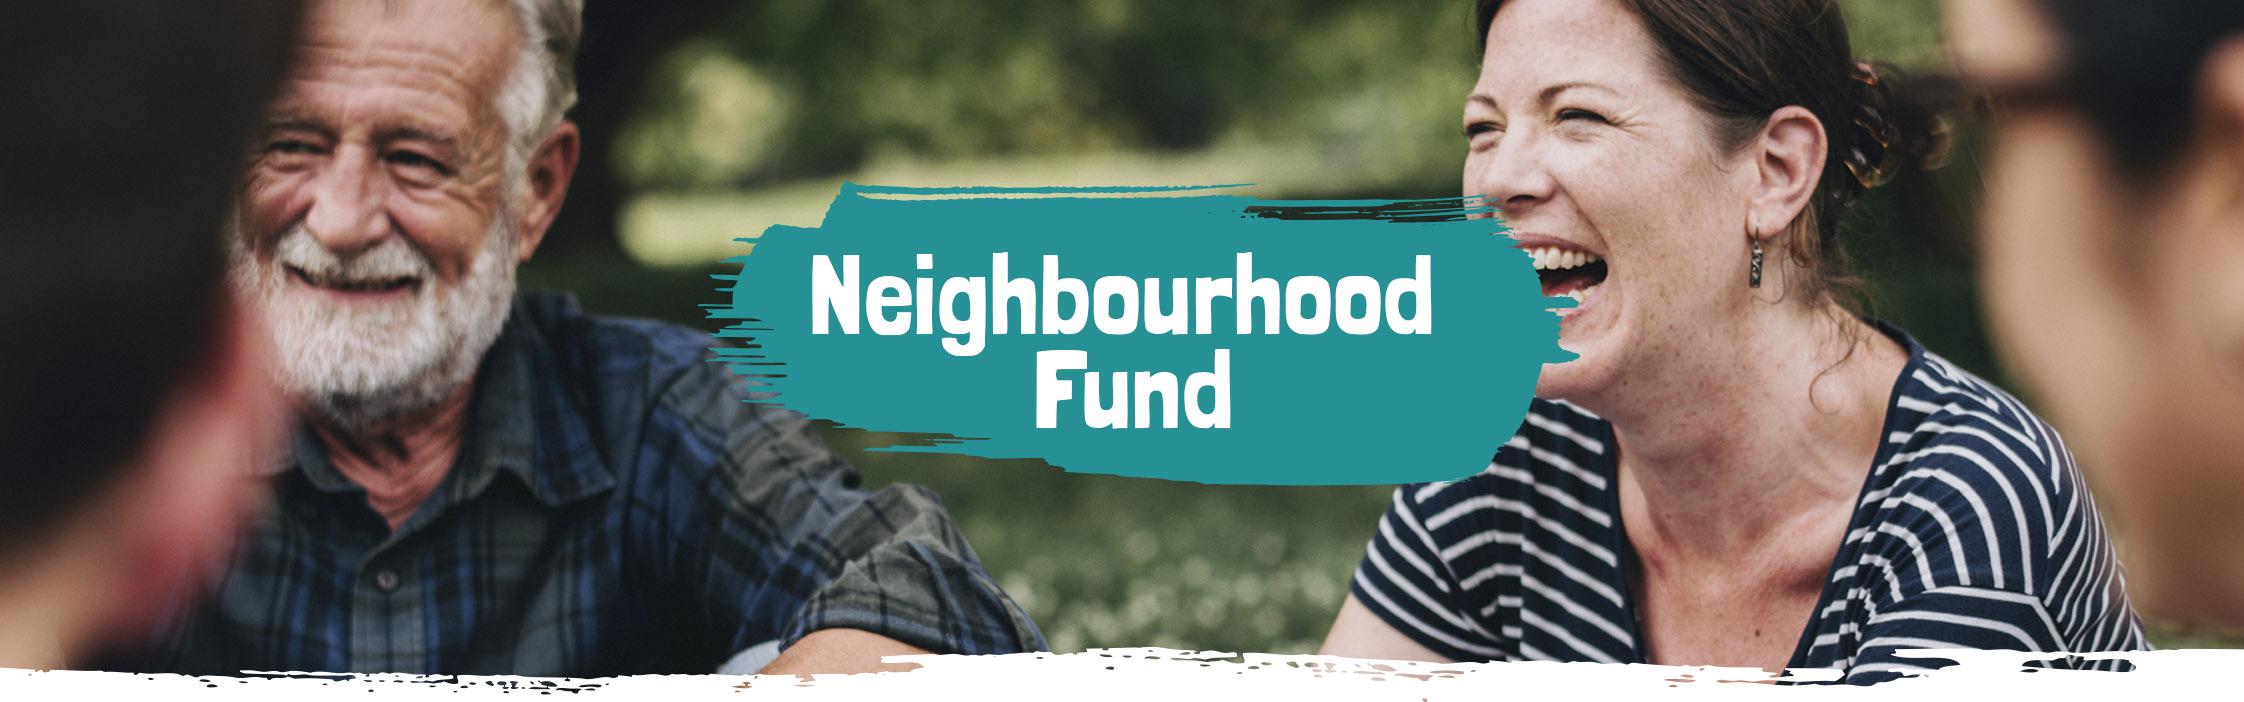 neighbourhood-fund.jpg